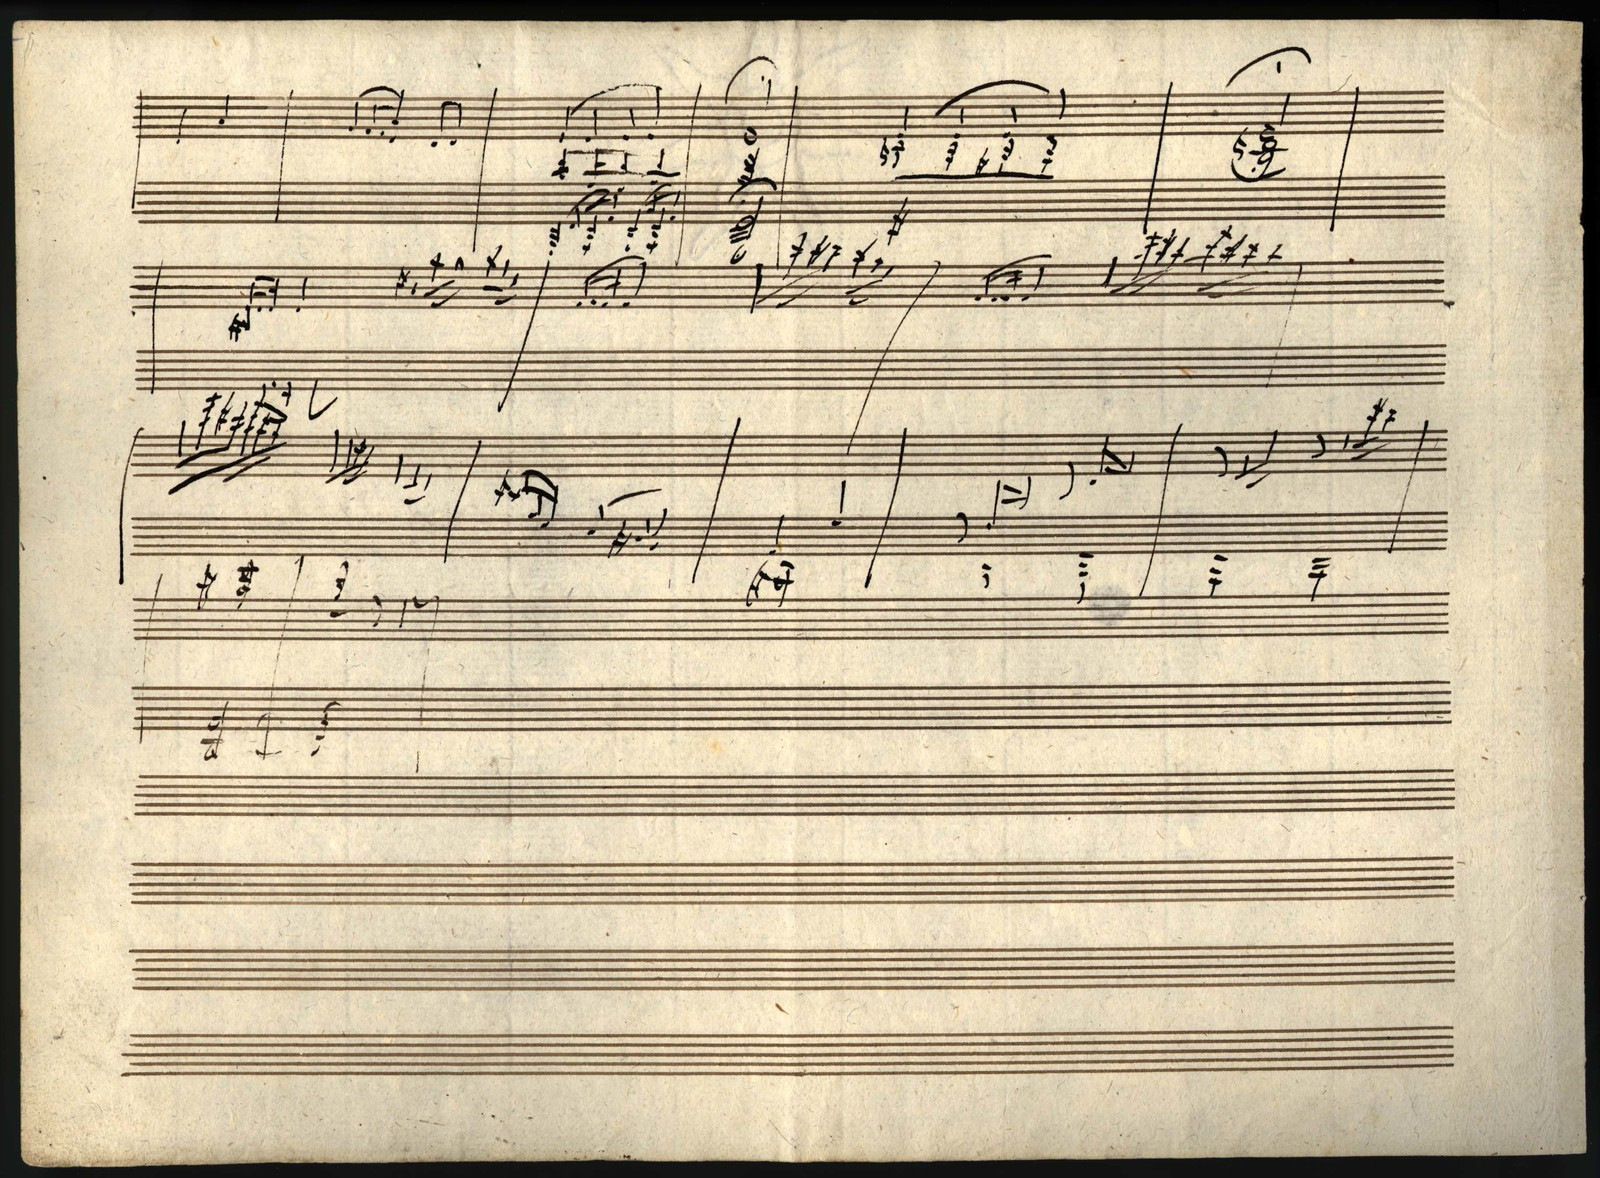 [Piano Sonata in D Major, op. 28, Andante, 1810?]